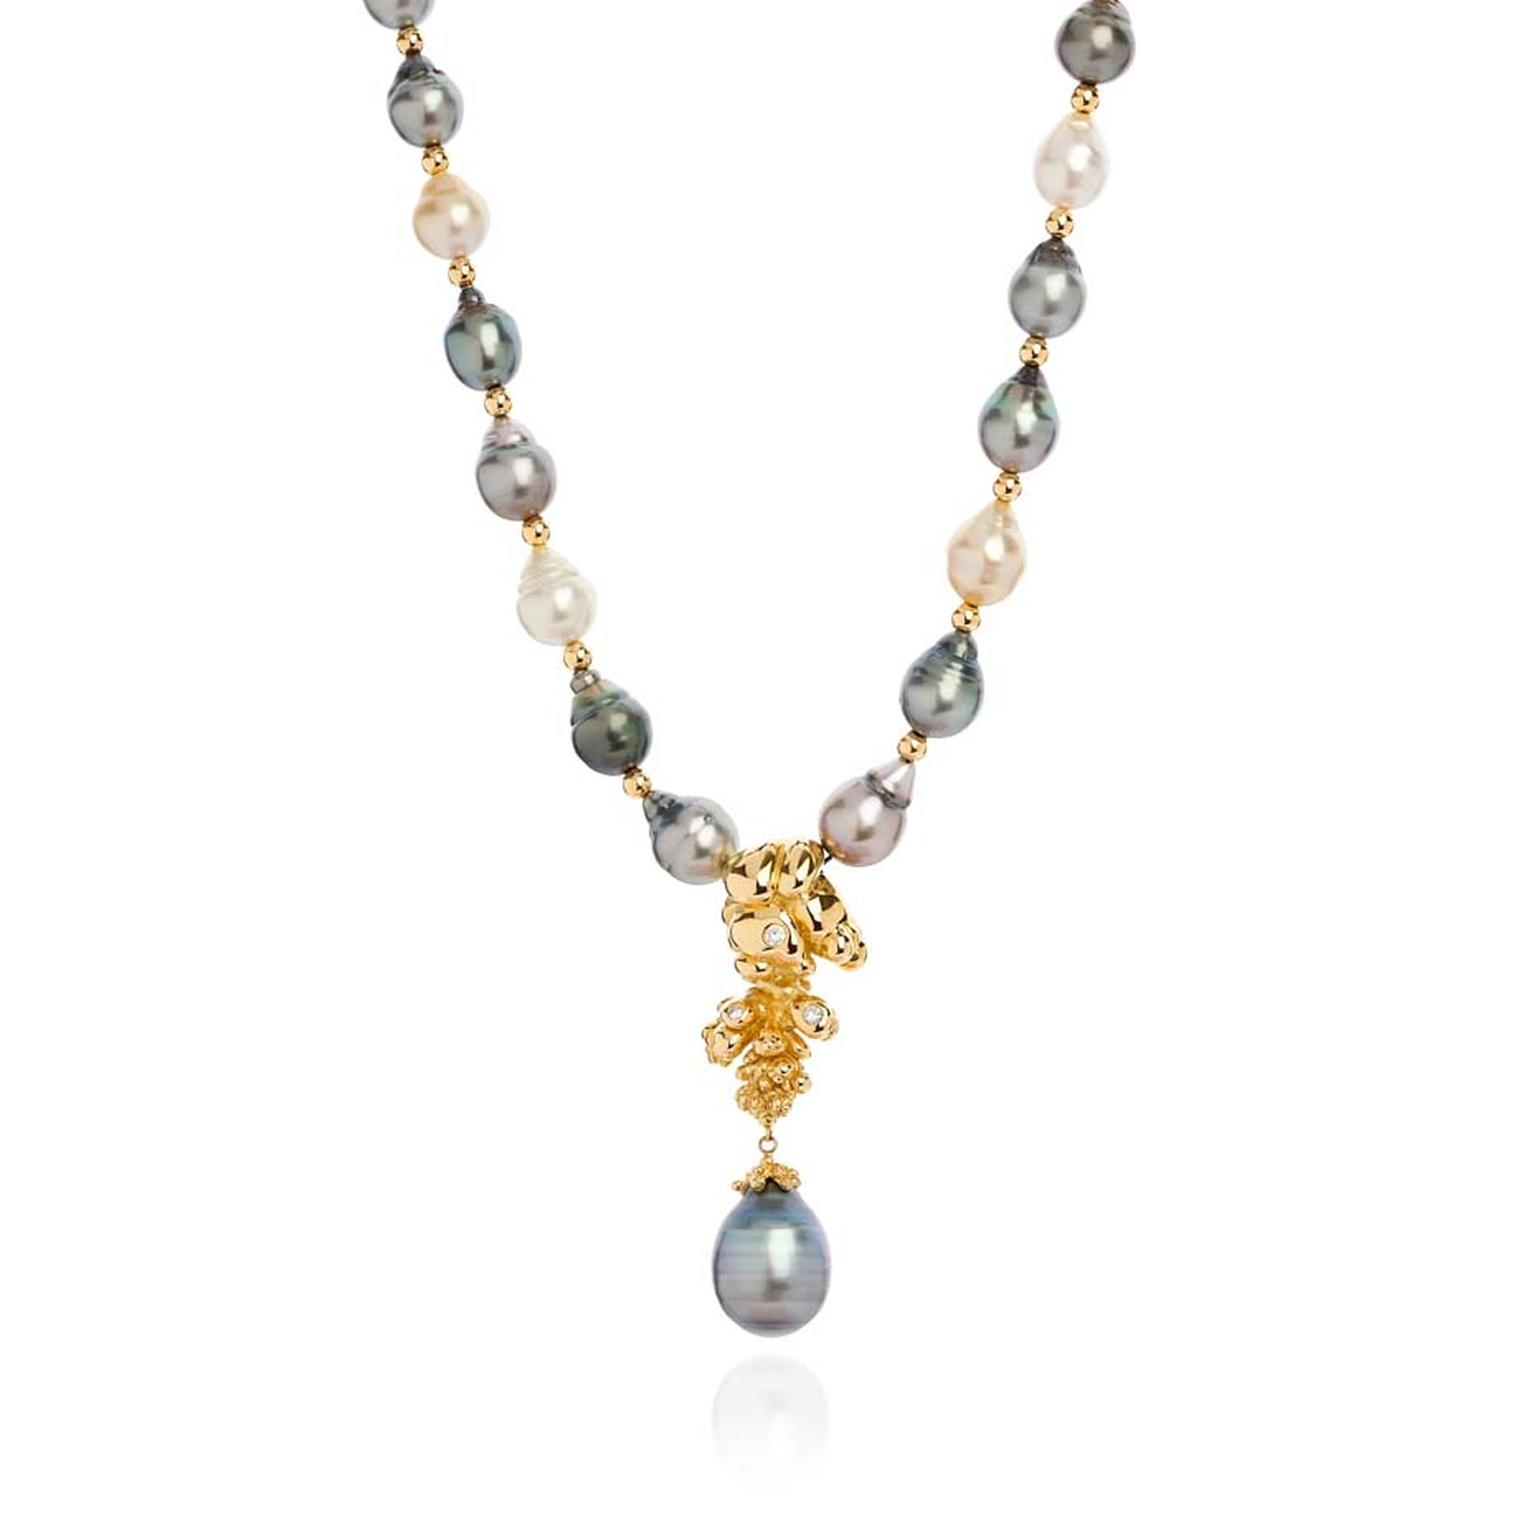 Ornella Iannuzzi Precious Trinity from the depth of Nature gold necklace featuring a Tahitian pearl set with three diamonds, and mounted with South Sea & Tahitian pearls.